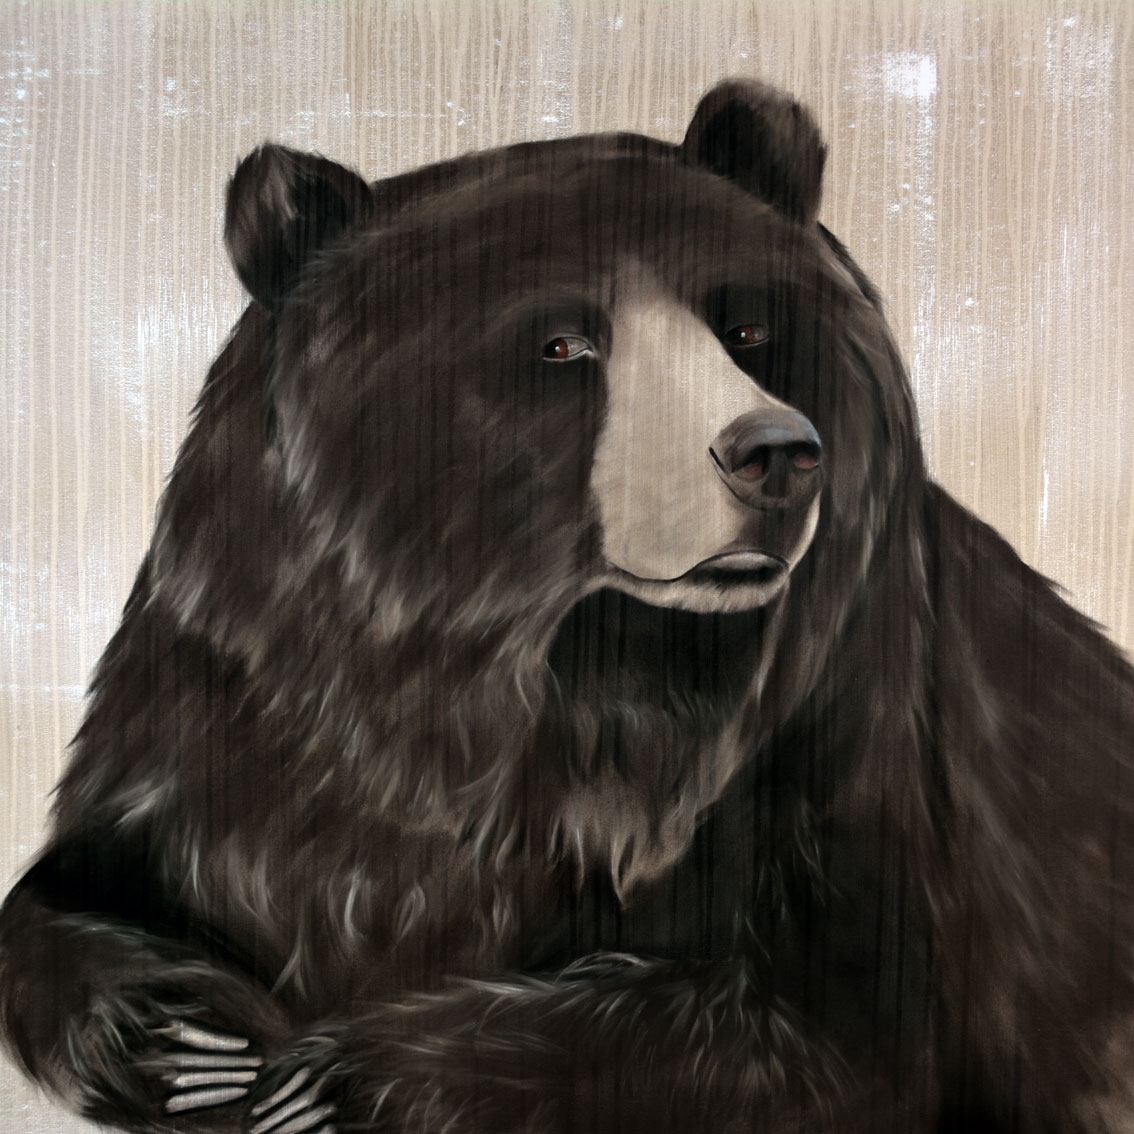 GRIZZLY BEAR BEAR%2C%20BROWN%20BEAR%2CGRIZZLY Thierry Bisch painter animals painting art decoration hotel design interior luxury nature biodiversity conservation